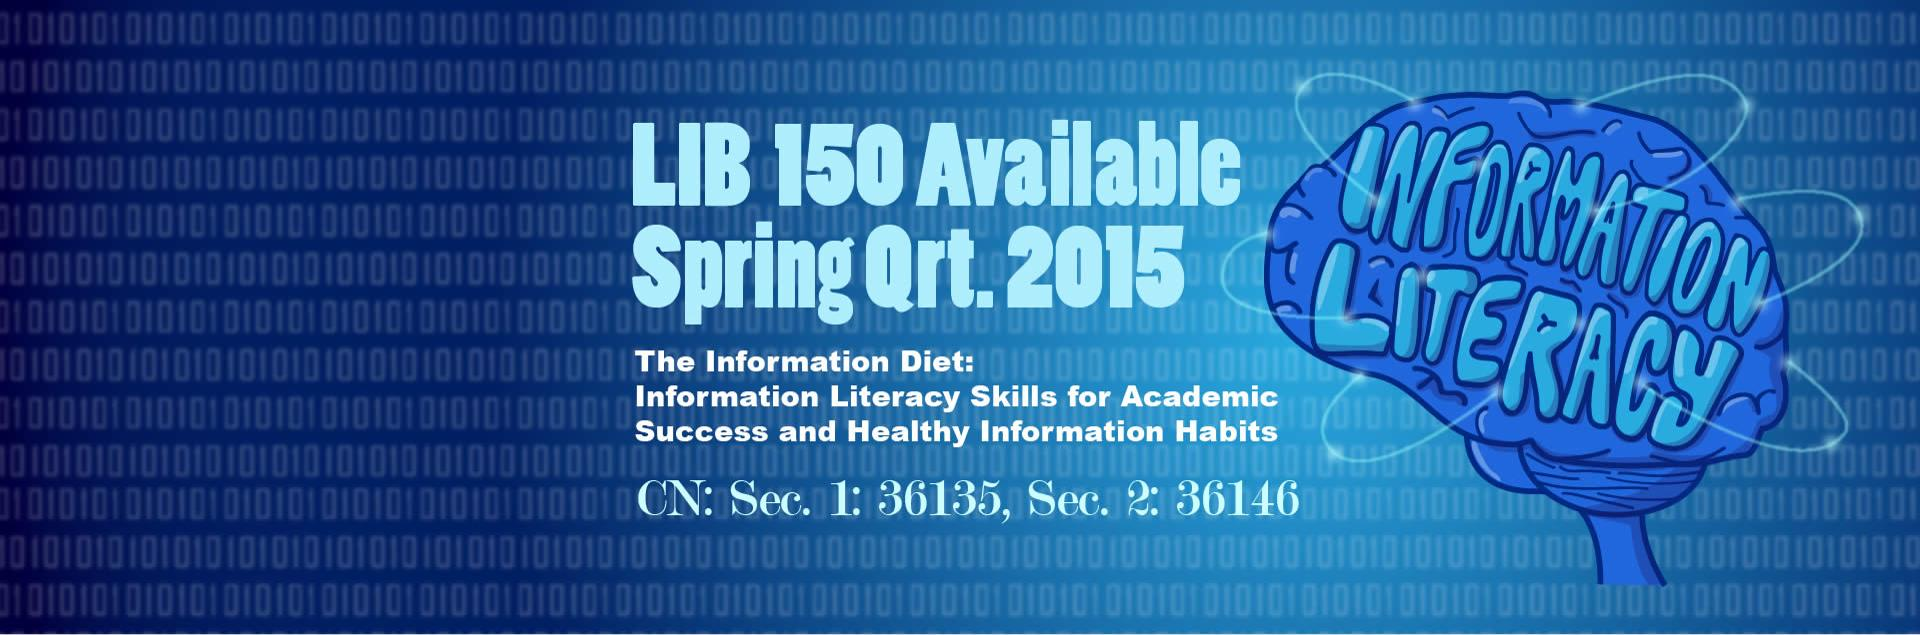 LIB 150 Available Spring Quarter 2015